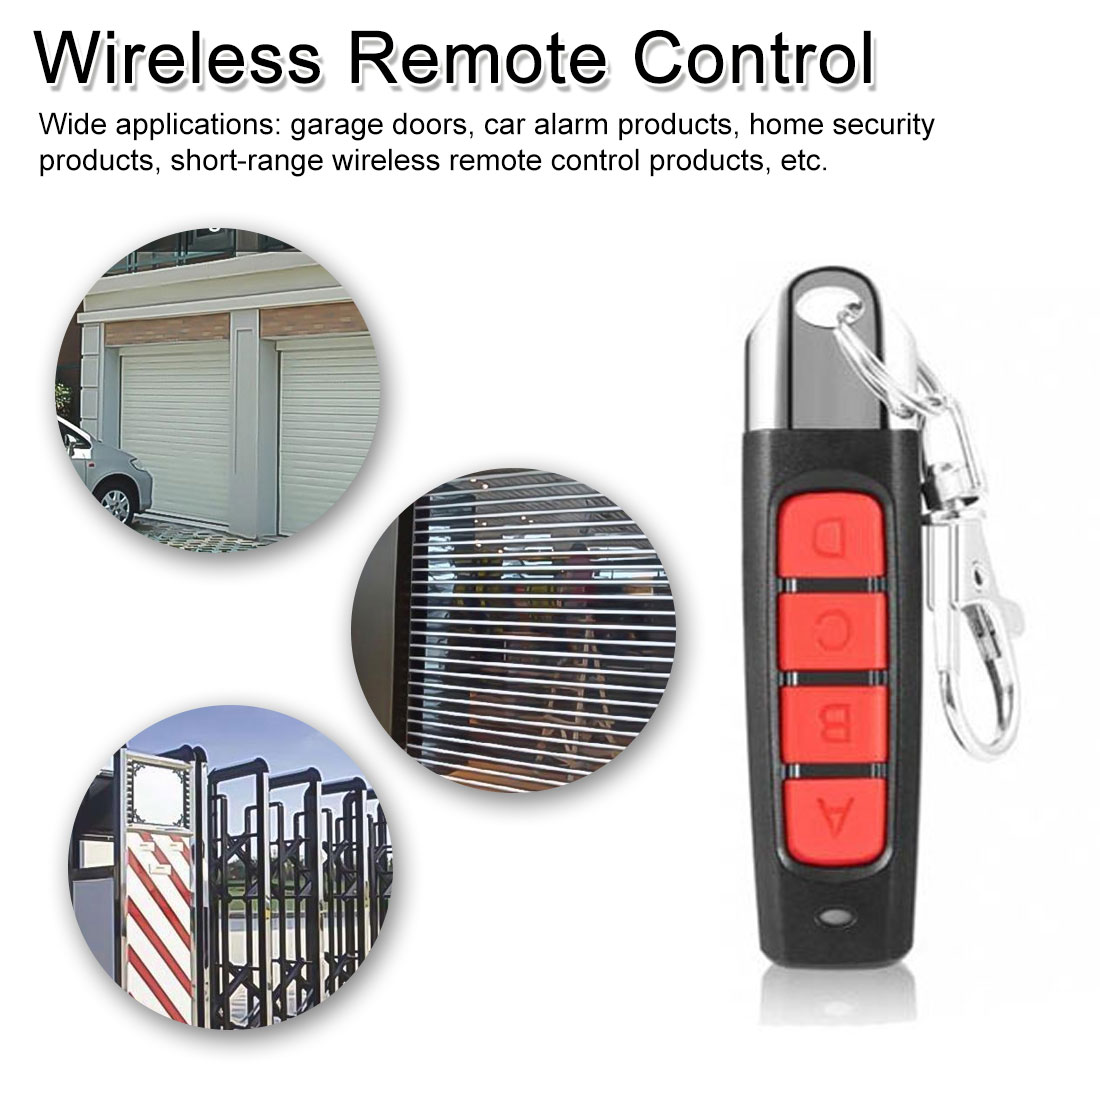 Universal Wireless Remote Control 433Mhz Receiver Module RF Transmitter Electric Cloning Gate Garage